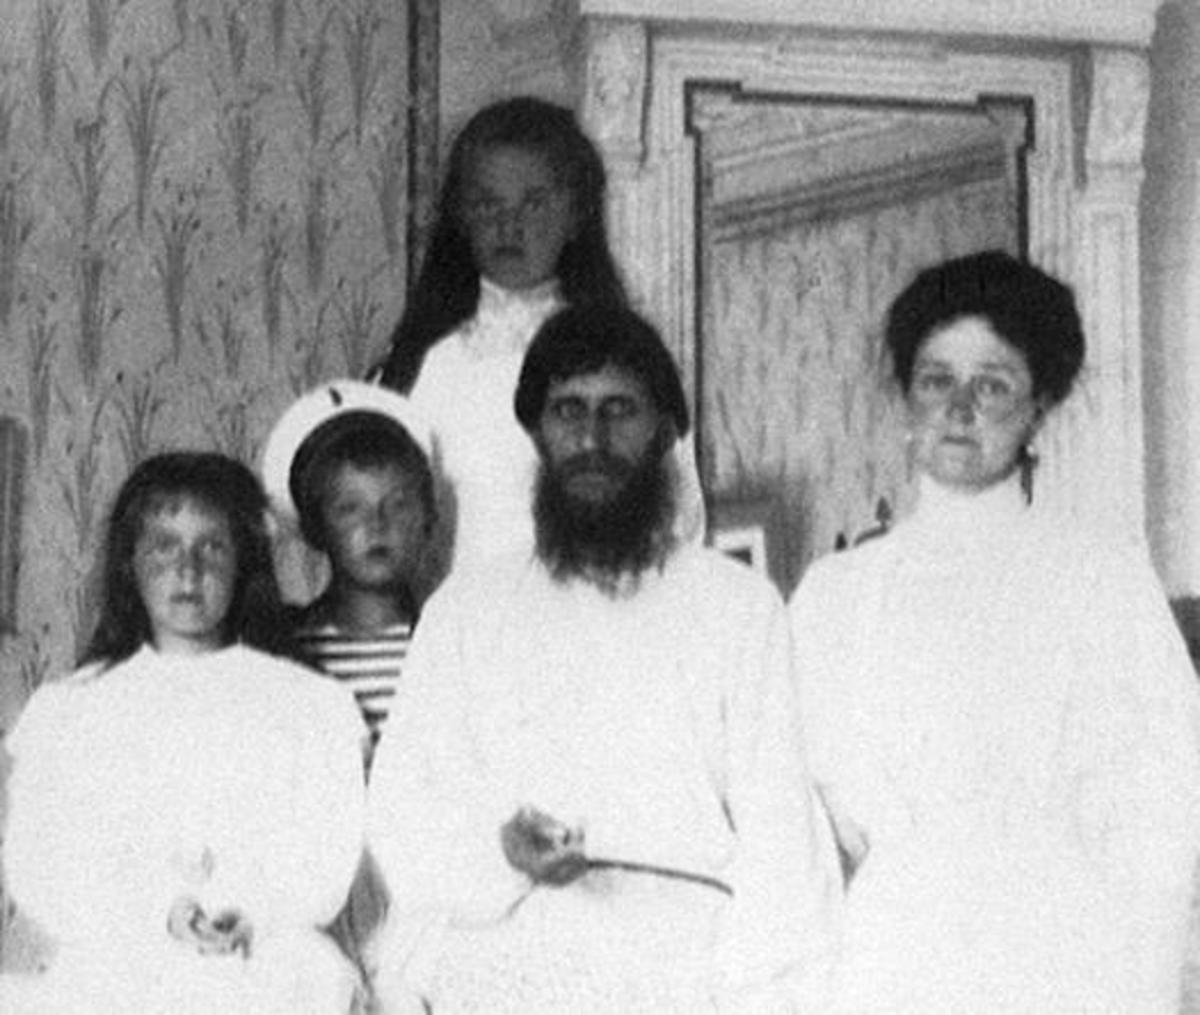 Rasputin with Tsarina Alexandra and Tsarevich Alexei on either side.